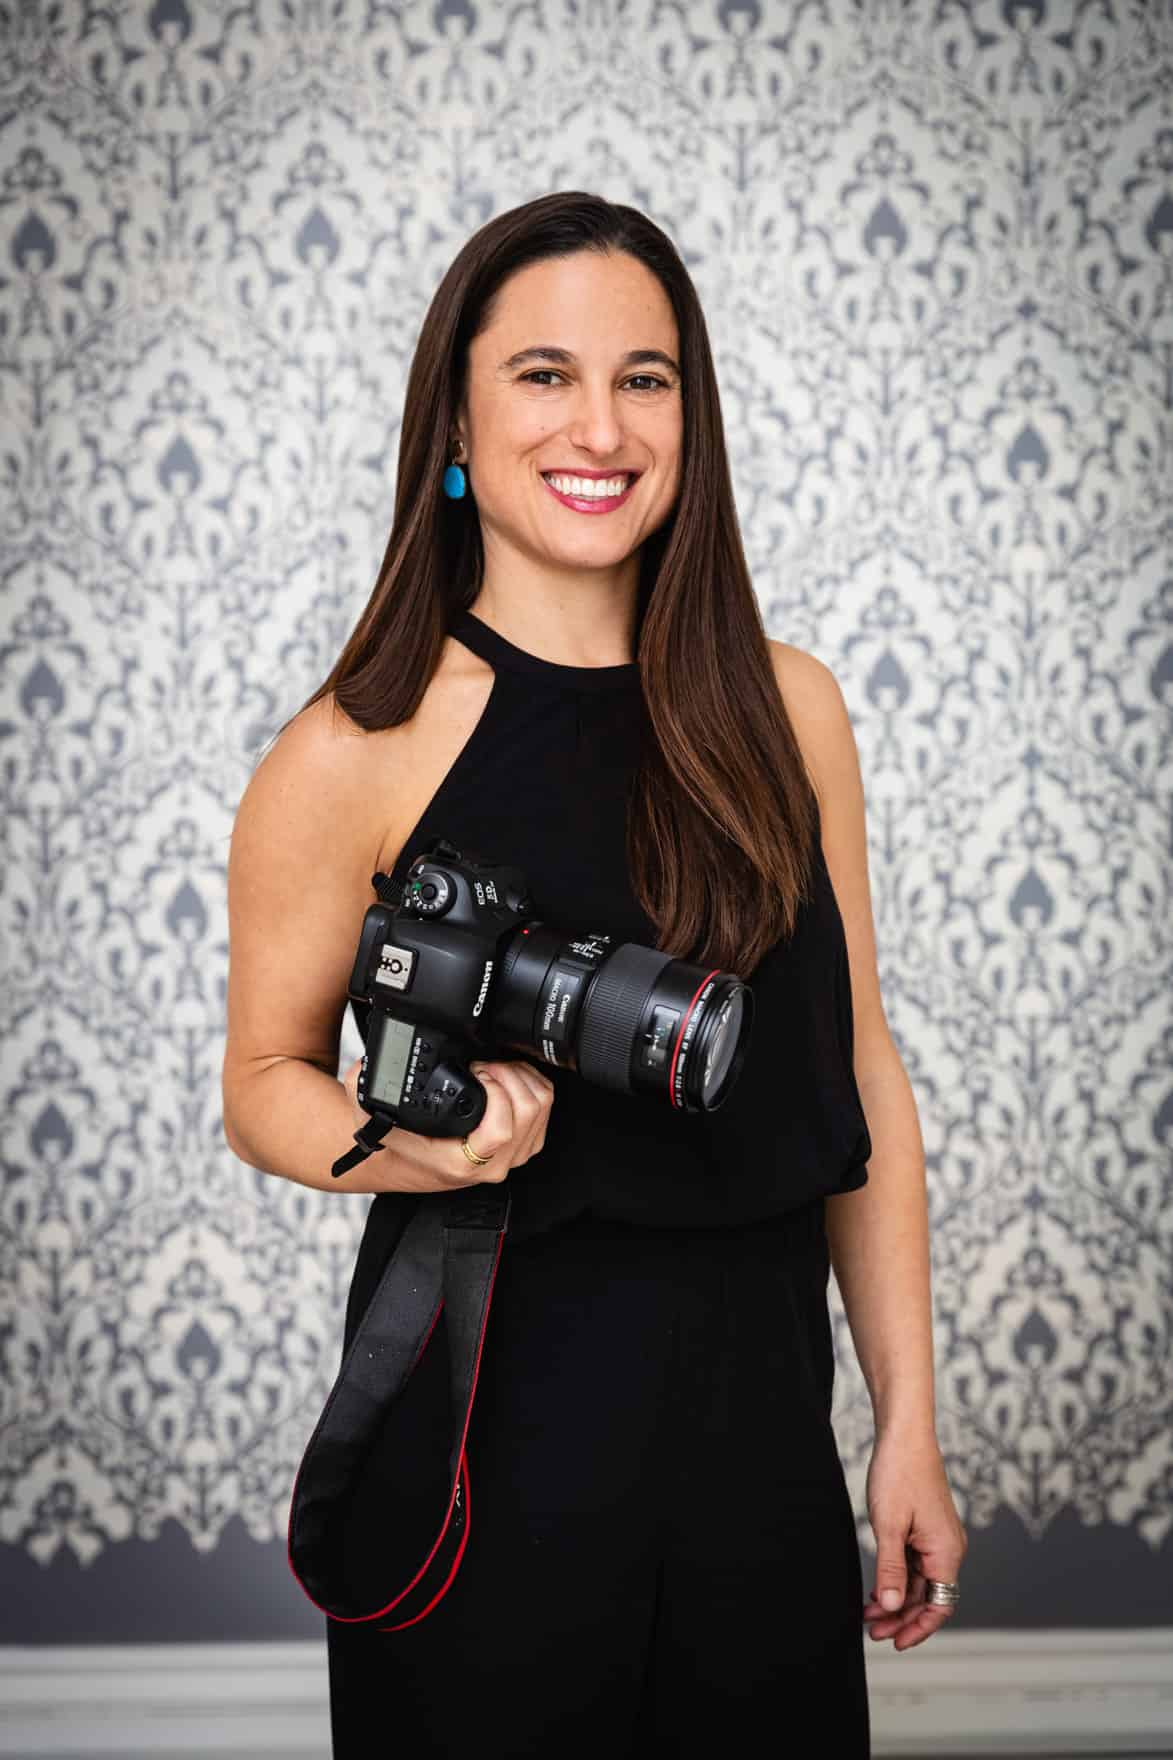 Chef Daniela Gerson holding her camera.